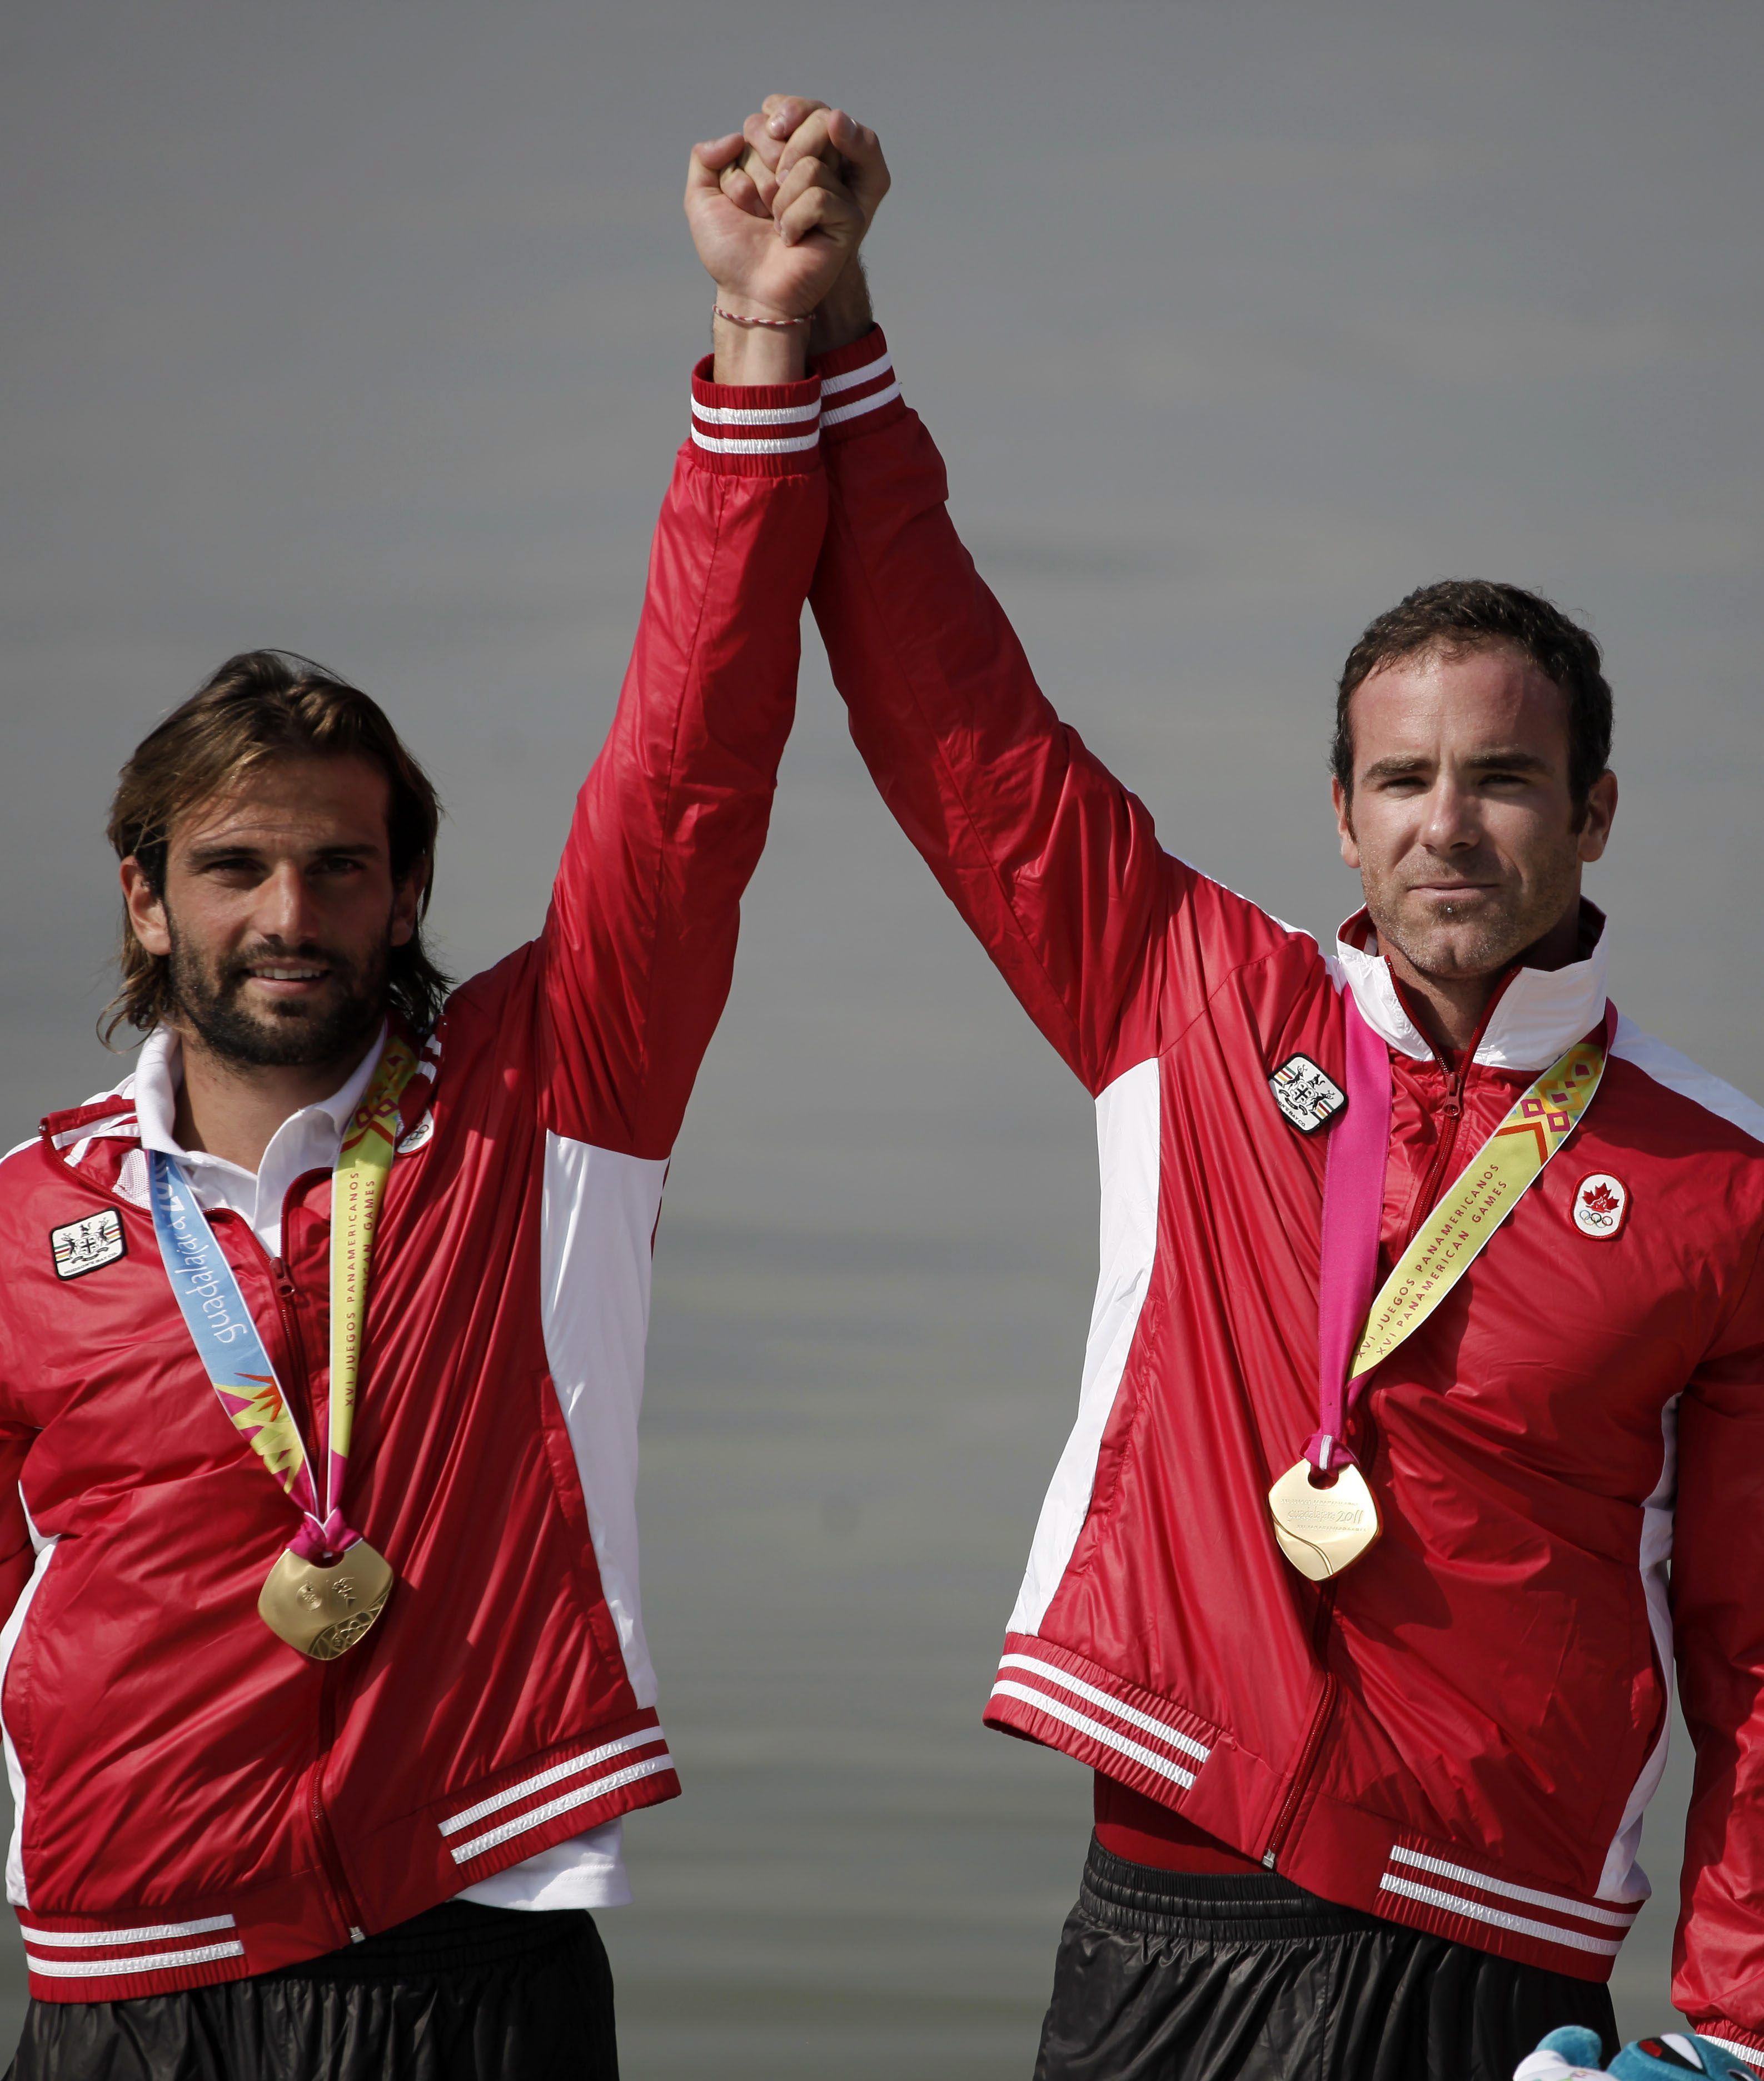 Gold medal winners Hugues Fournel, left, and Paul Cochrane from Canada celebrate on the winner's podium during the awards ceremony for the men's double K2 200m kayak event at the Pan American Games in Ciudad Guzman, Mexico, Saturday Oct. 29, 2011. (AP Photo/Eduardo Verdugo)